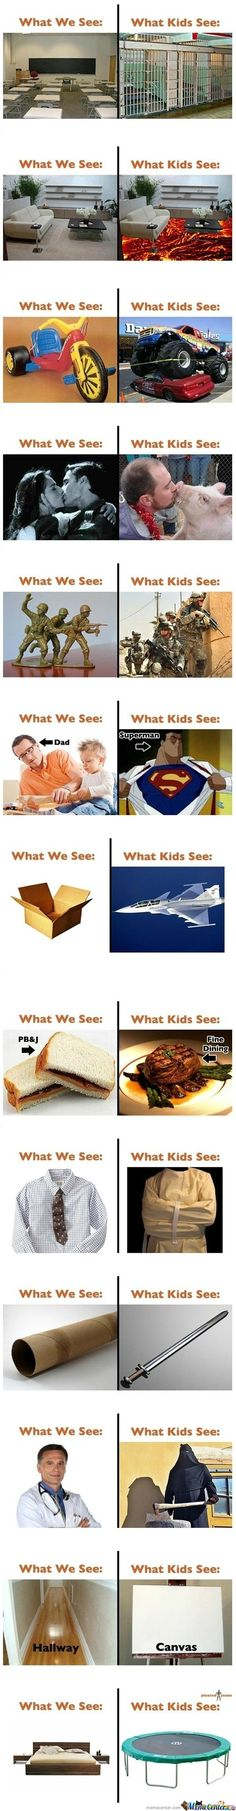 Kid Vision by Kevin OA - Meme Center